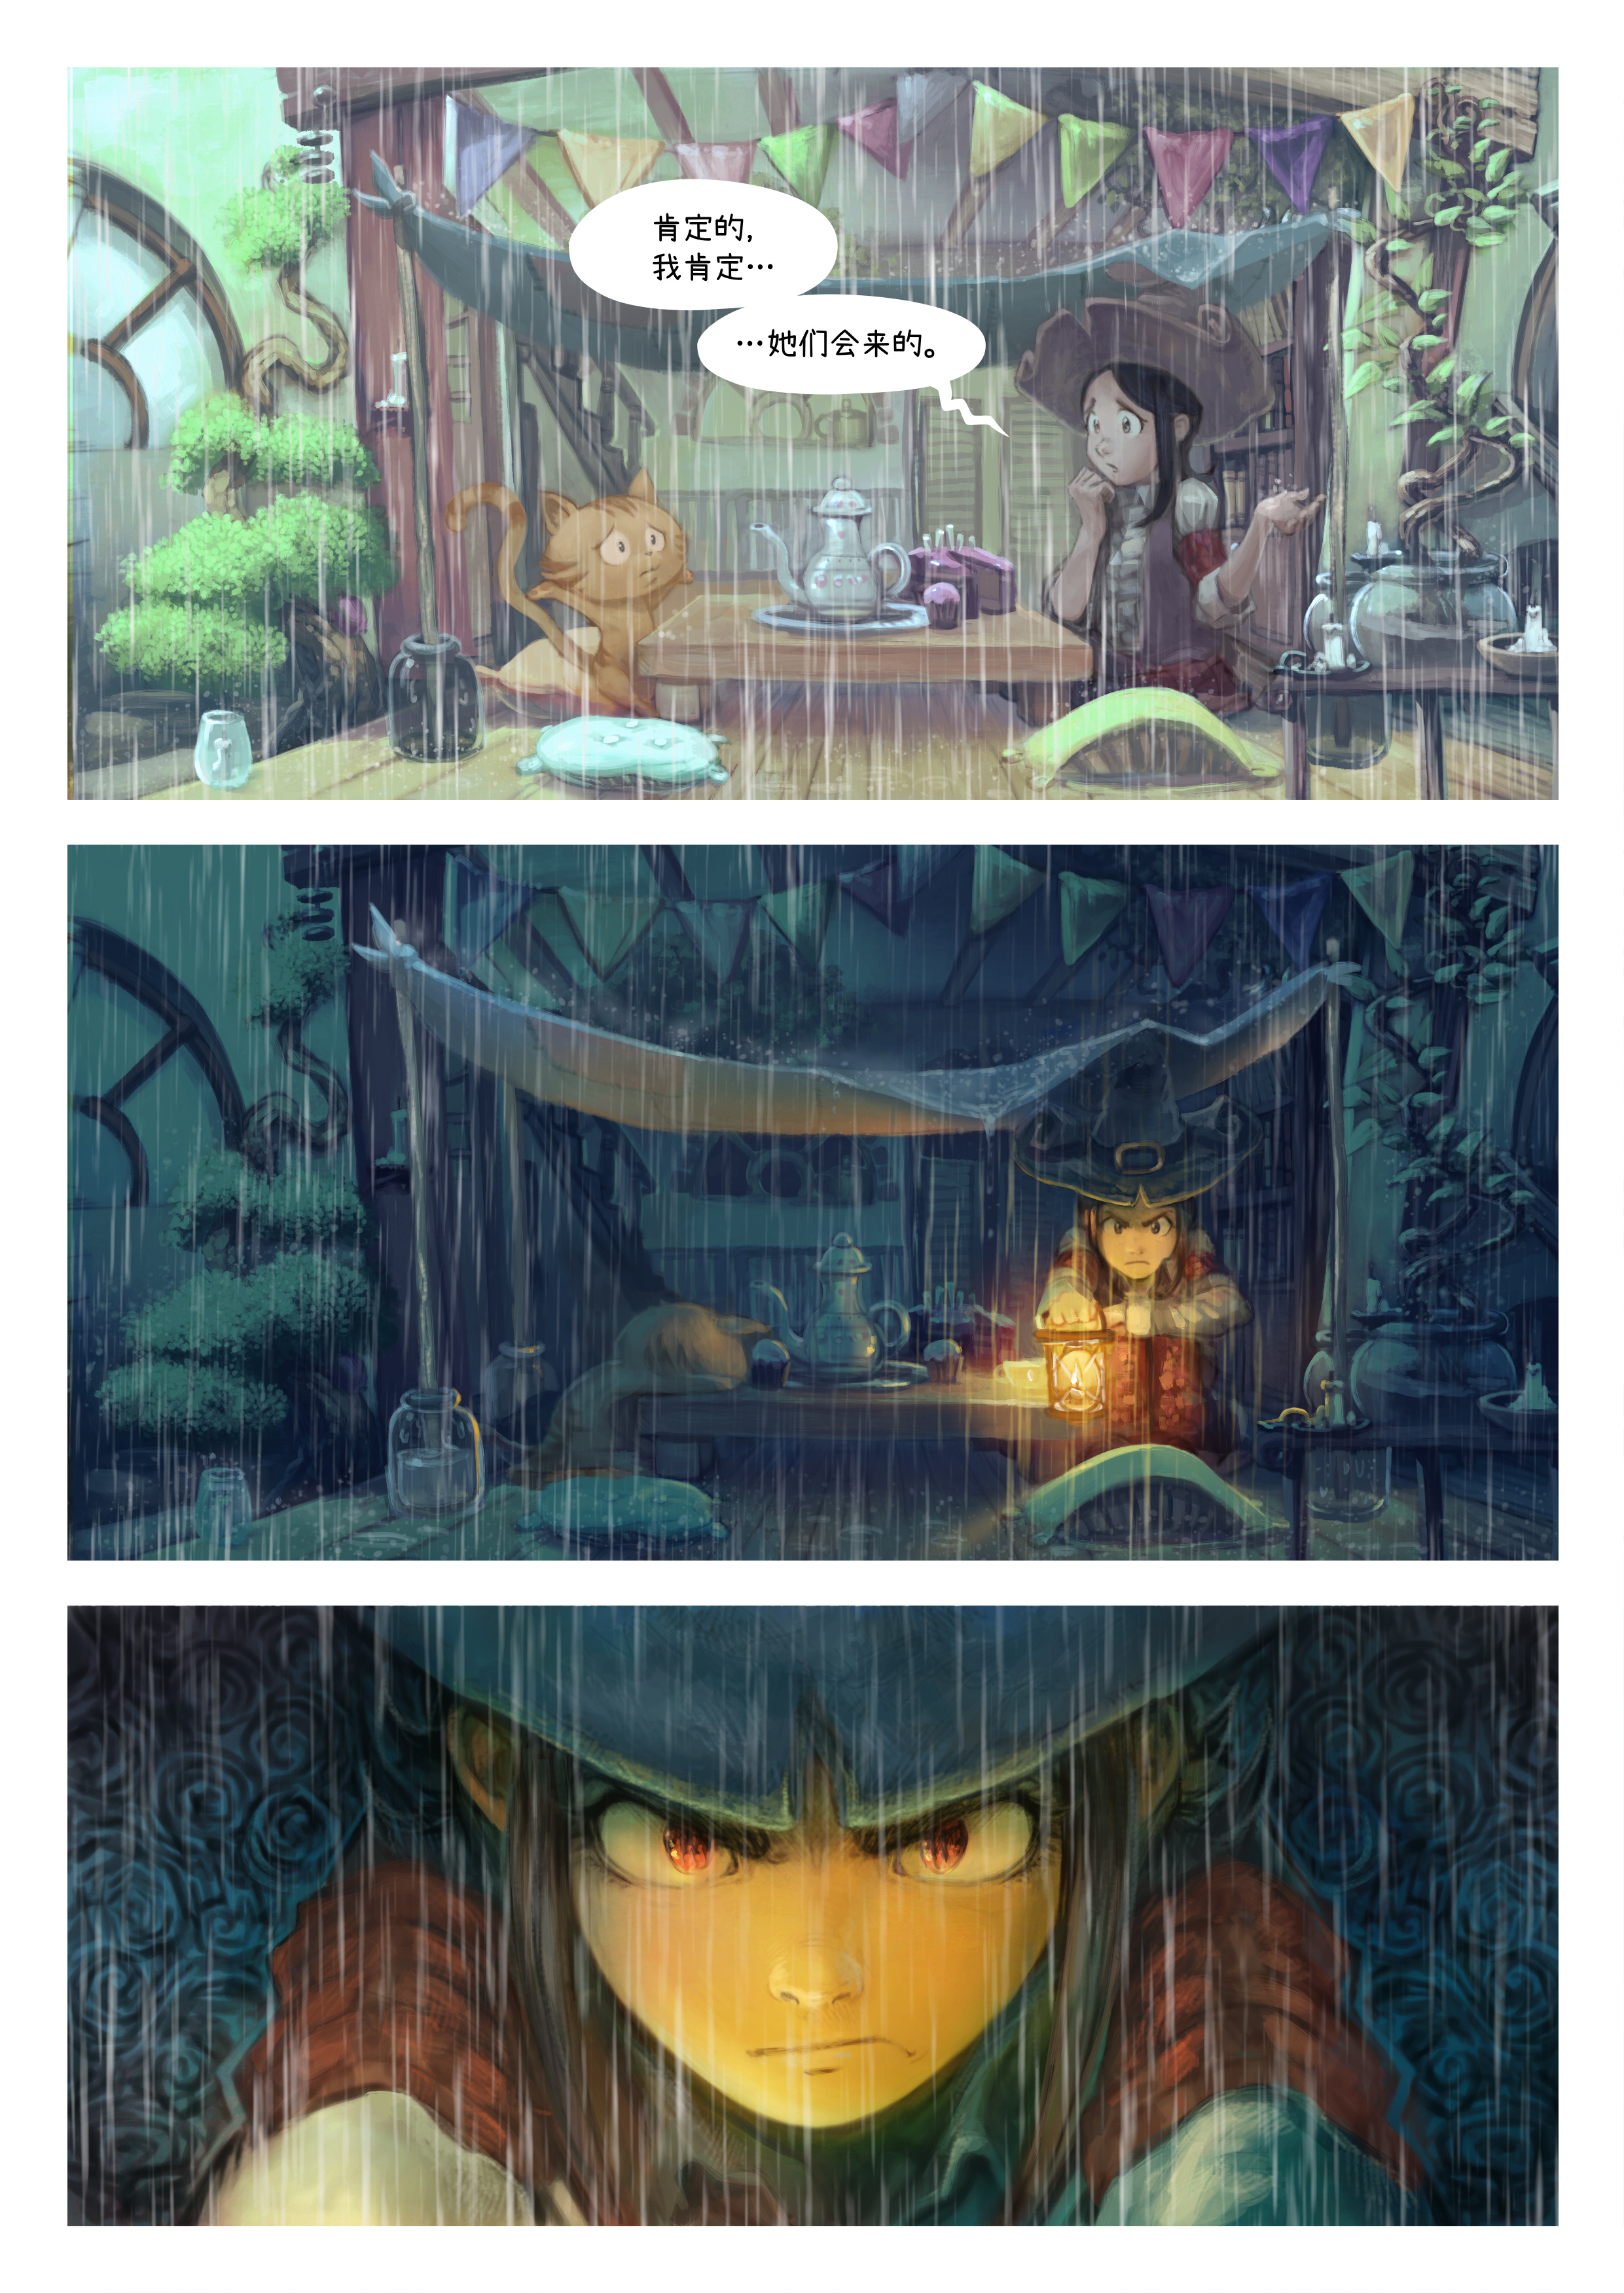 A webcomic page of Pepper&Carrot, 漫画全集 8 [cn], 页面 4